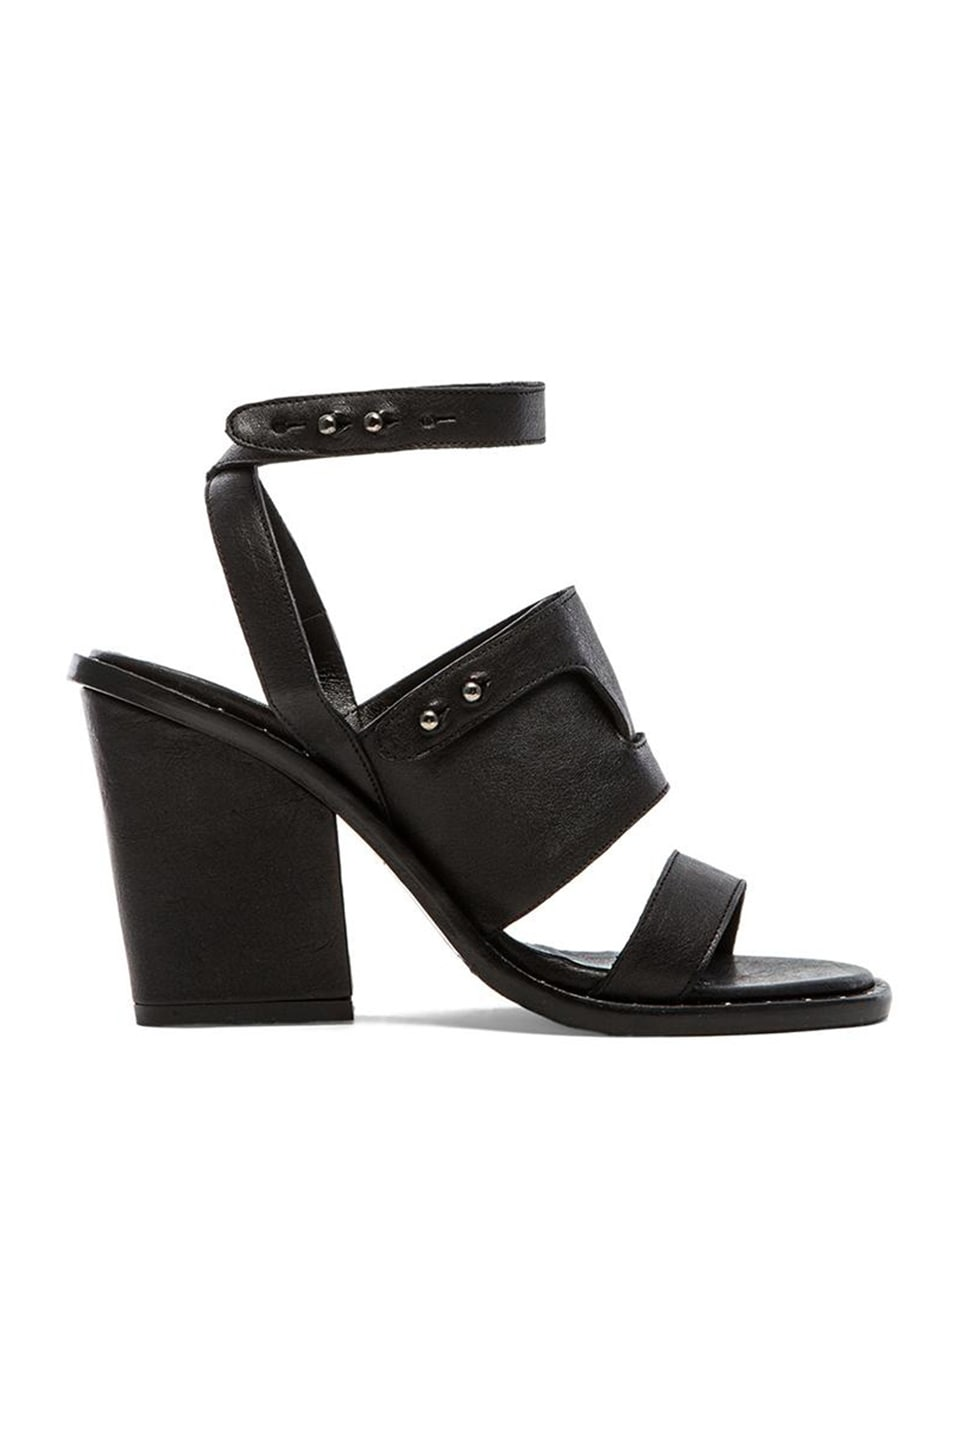 Freda Salvador Go Heel in Black Calf